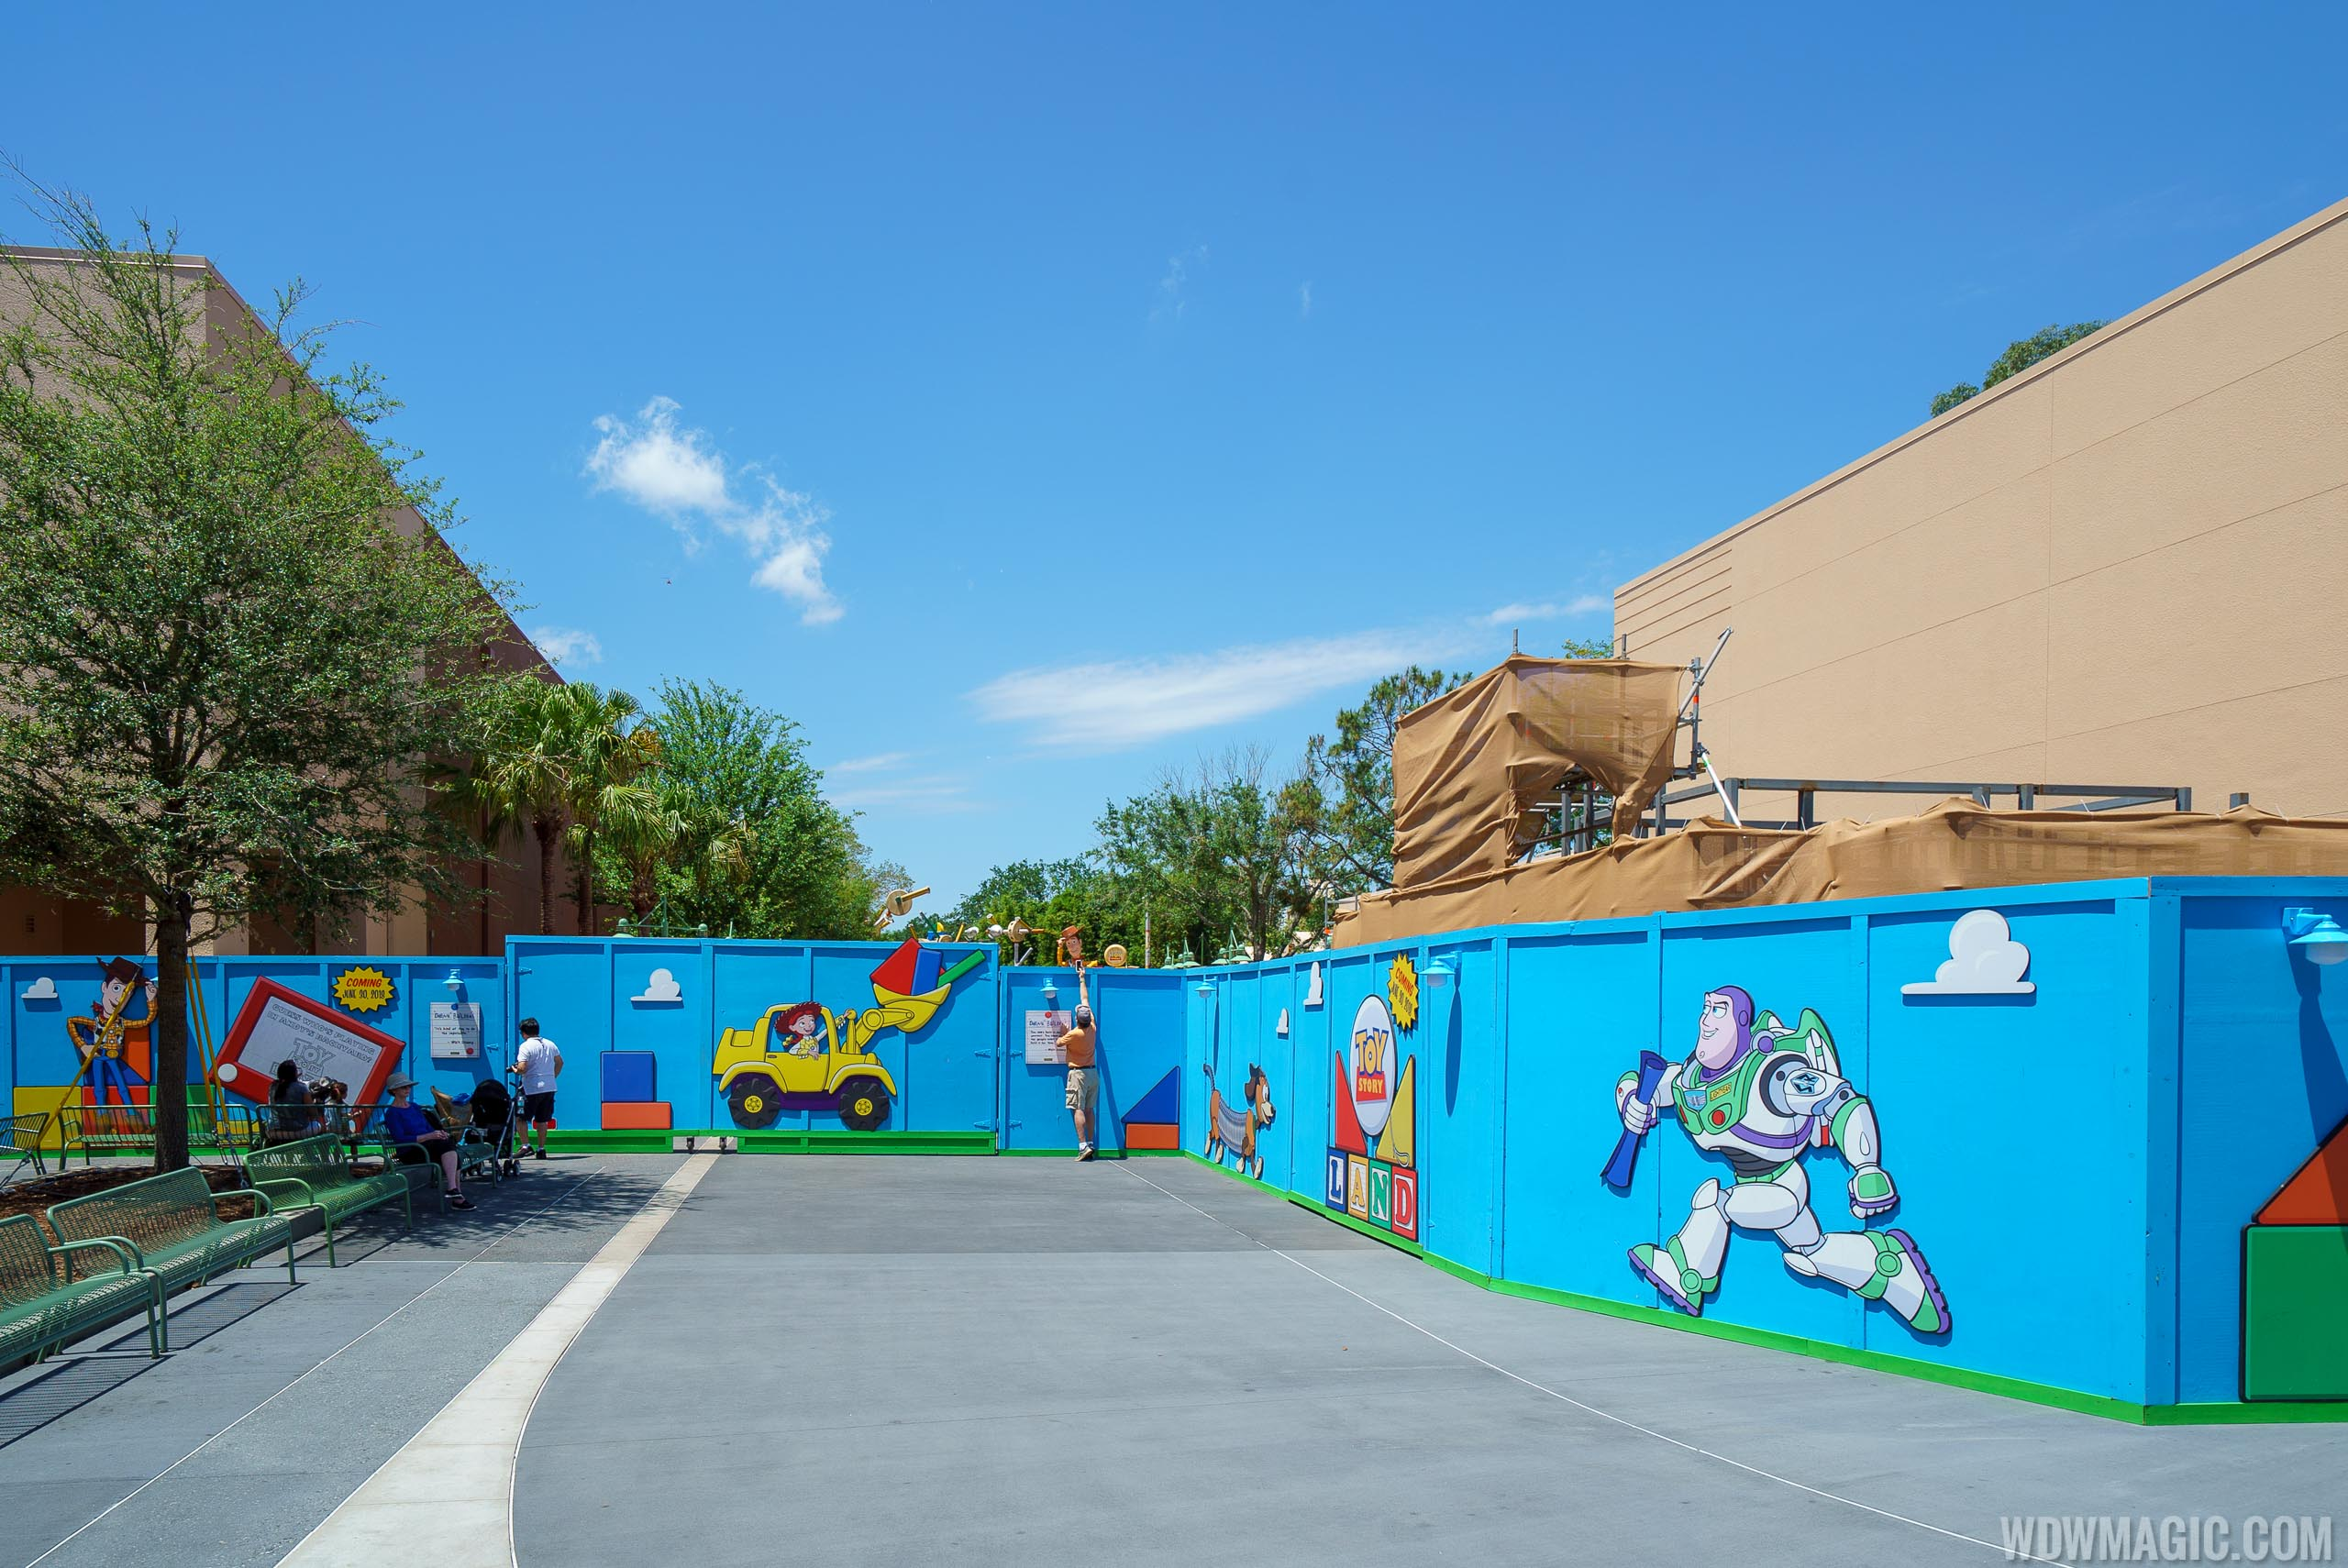 The entrance to Toy Story Land